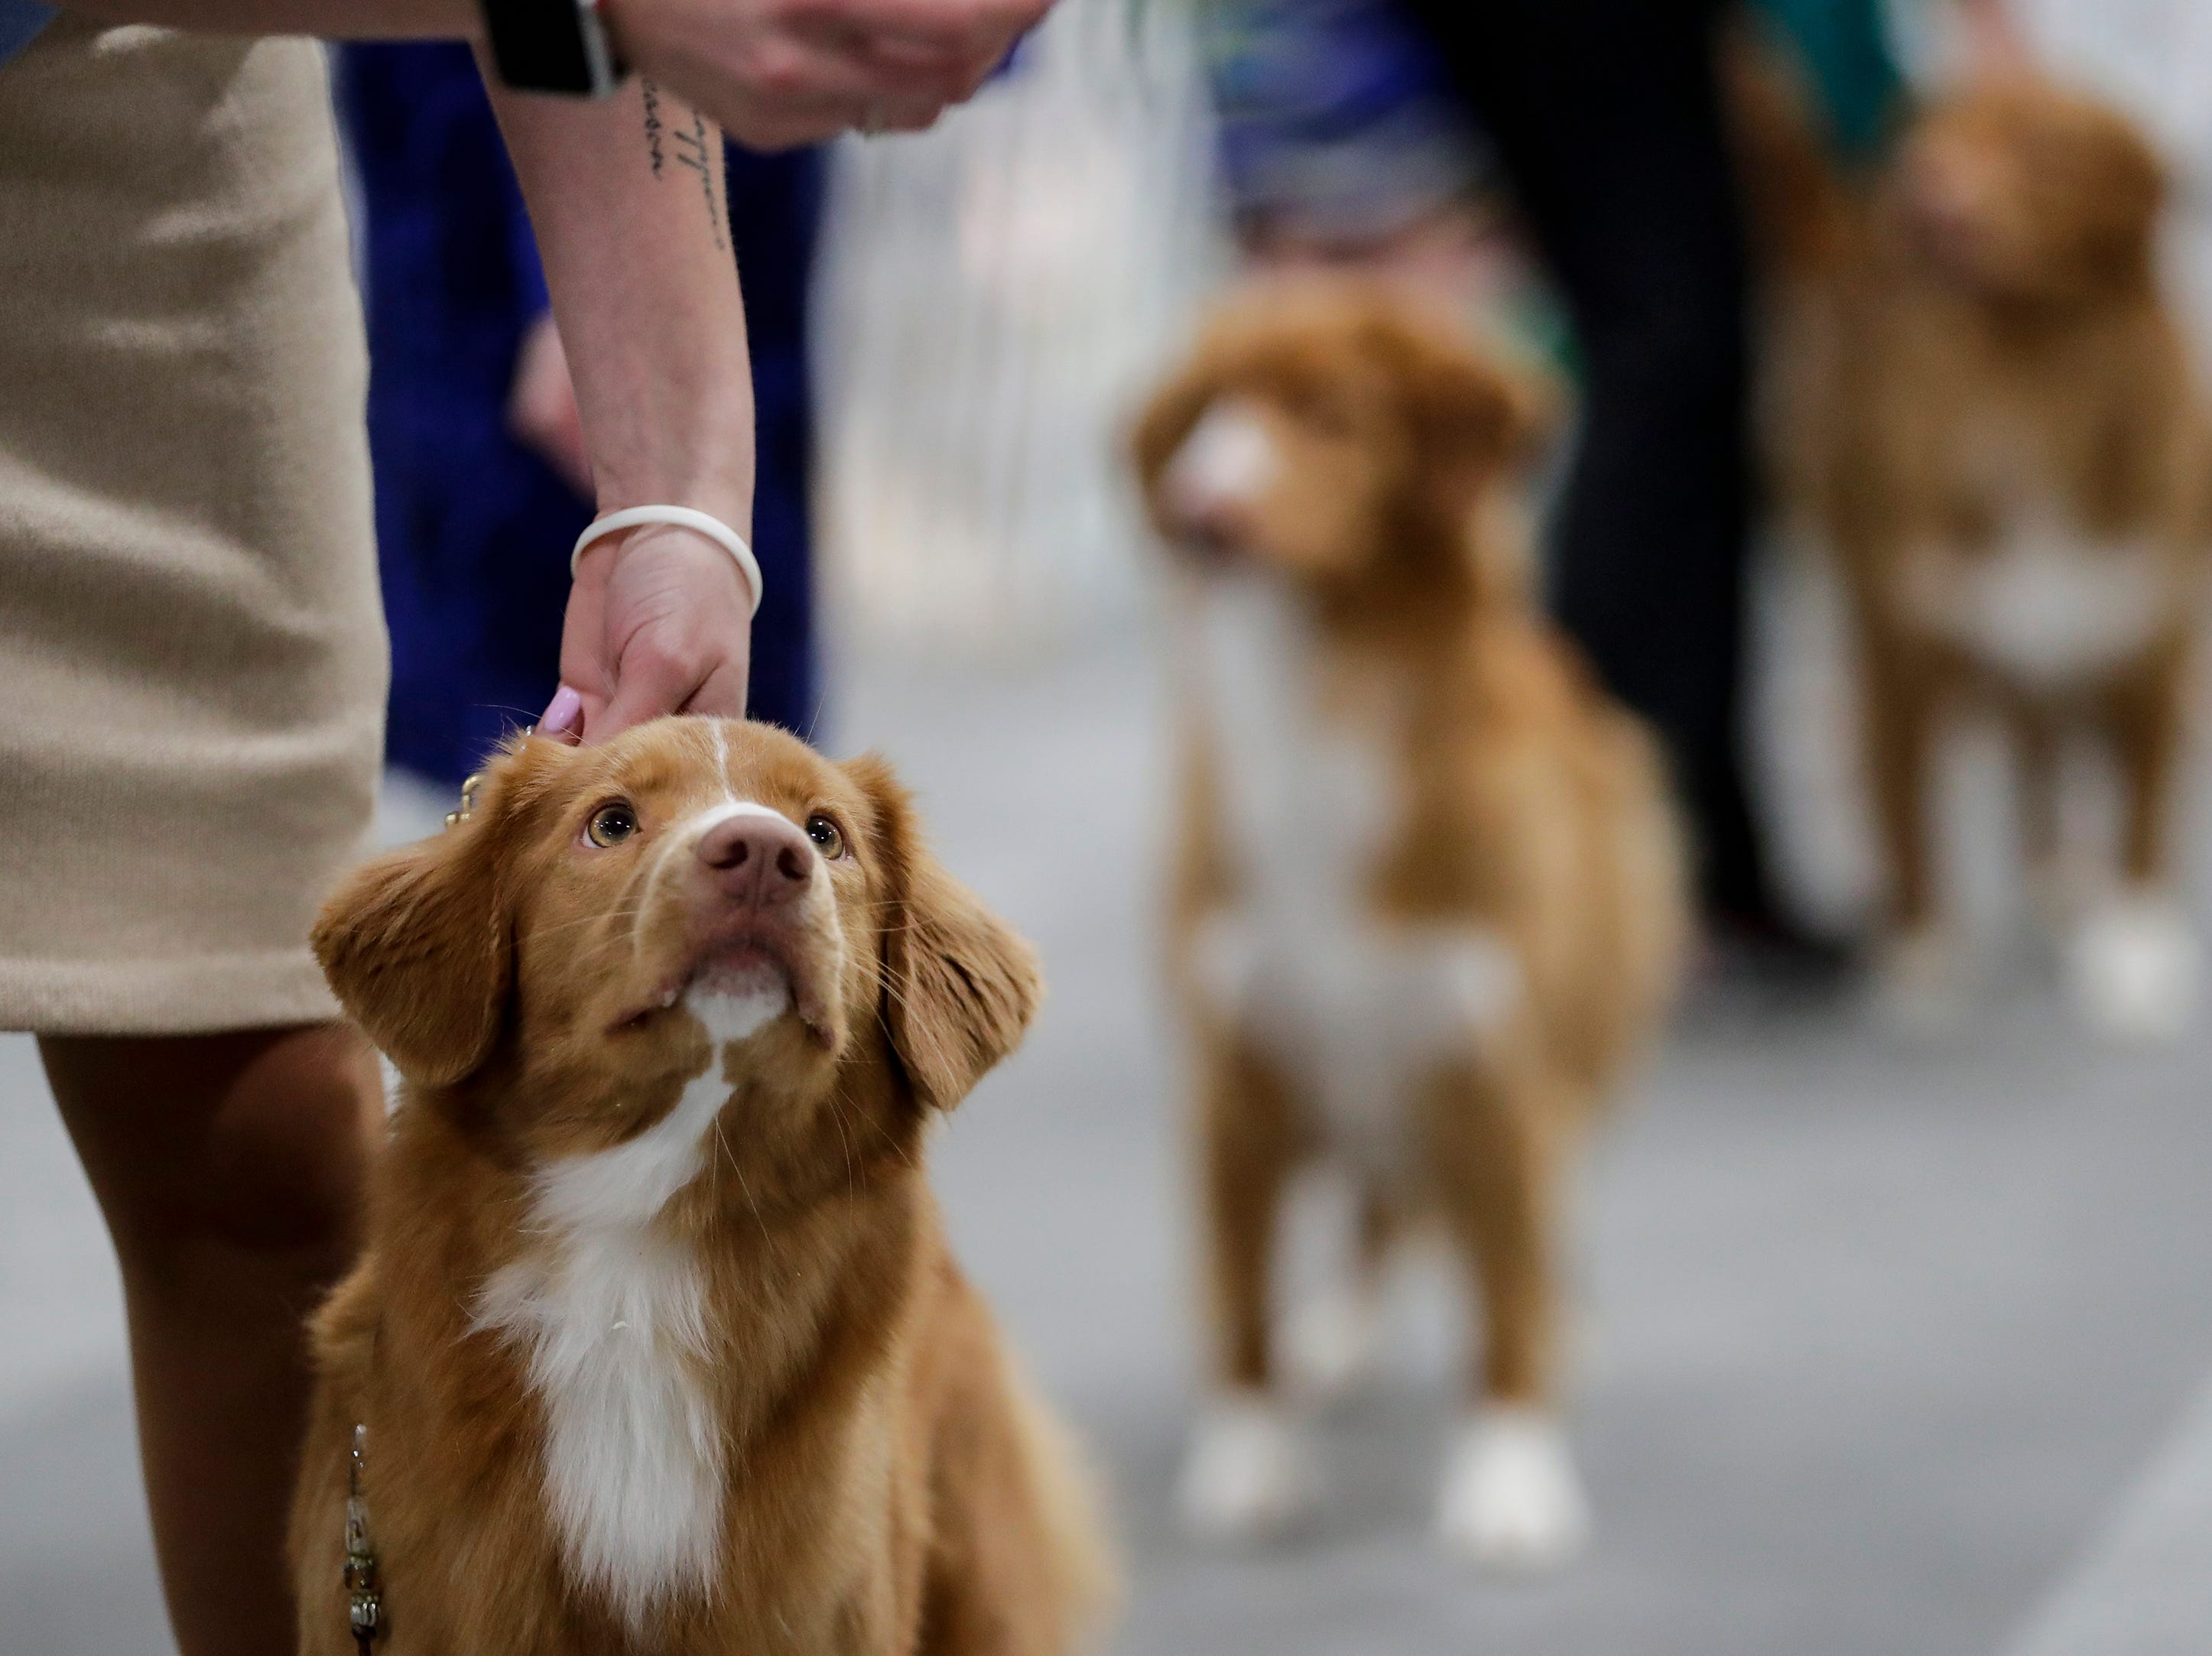 Taylor, a Nova Scotia duck tolling retriever, eyes a treat during the Northeast Wisconsin Dog Show Classic at the Manitowoc County Expo Center Thursday, March 28, 2019, in Manitowoc, Wis. Joshua Clark/USA TODAY NETWORK-Wisconsin